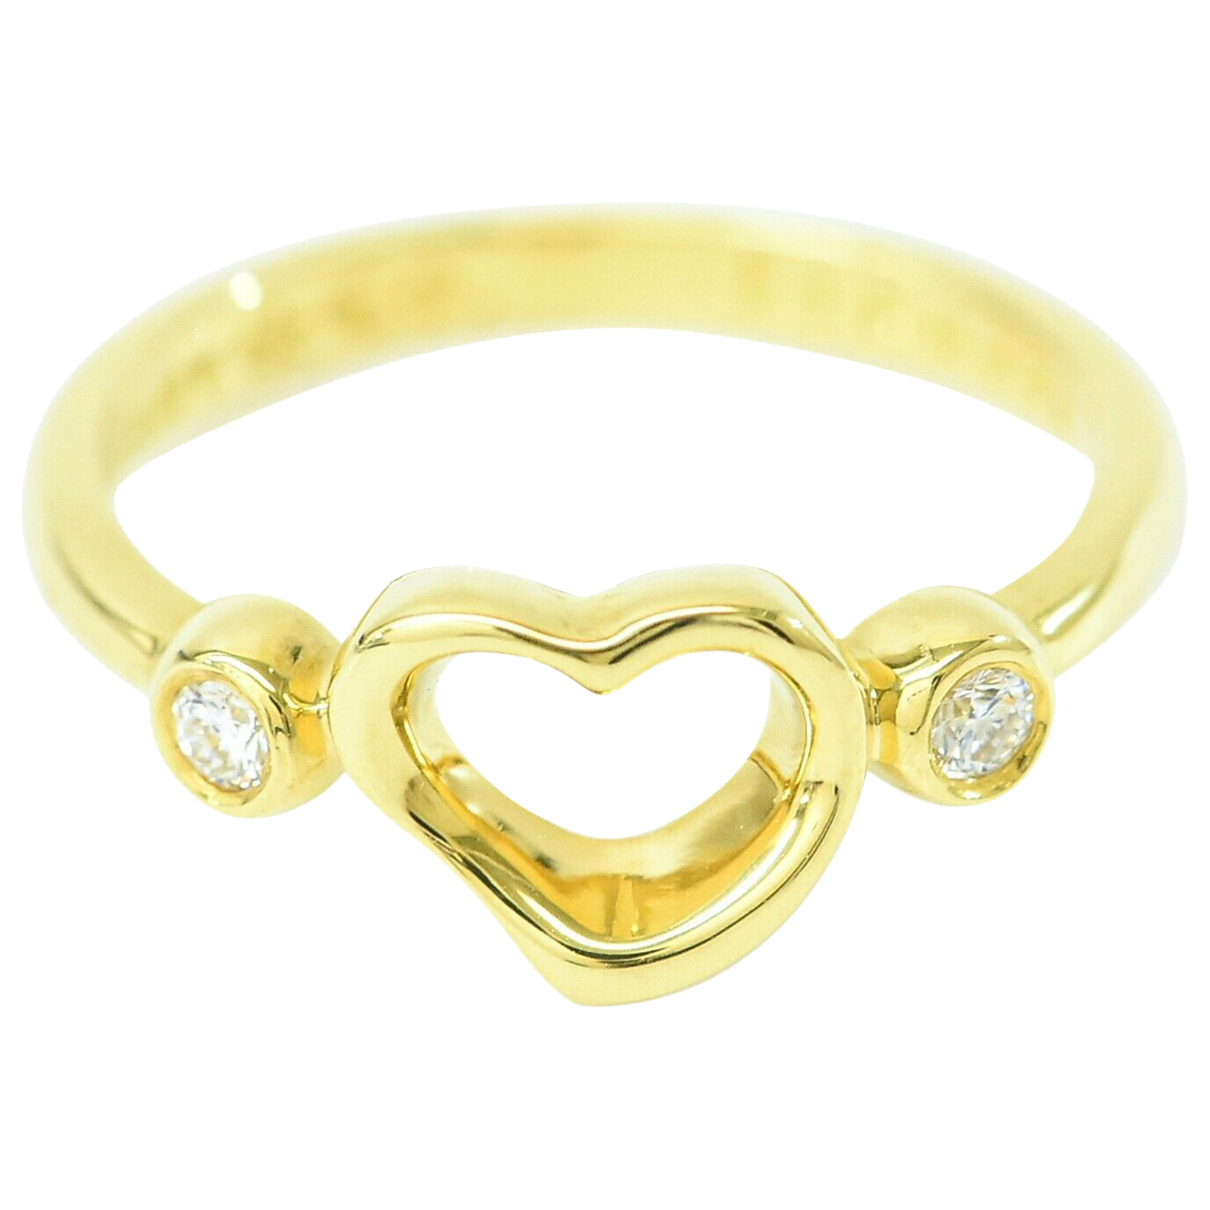 Tiffany & Co \N Ring in  Gelb Gelbgold